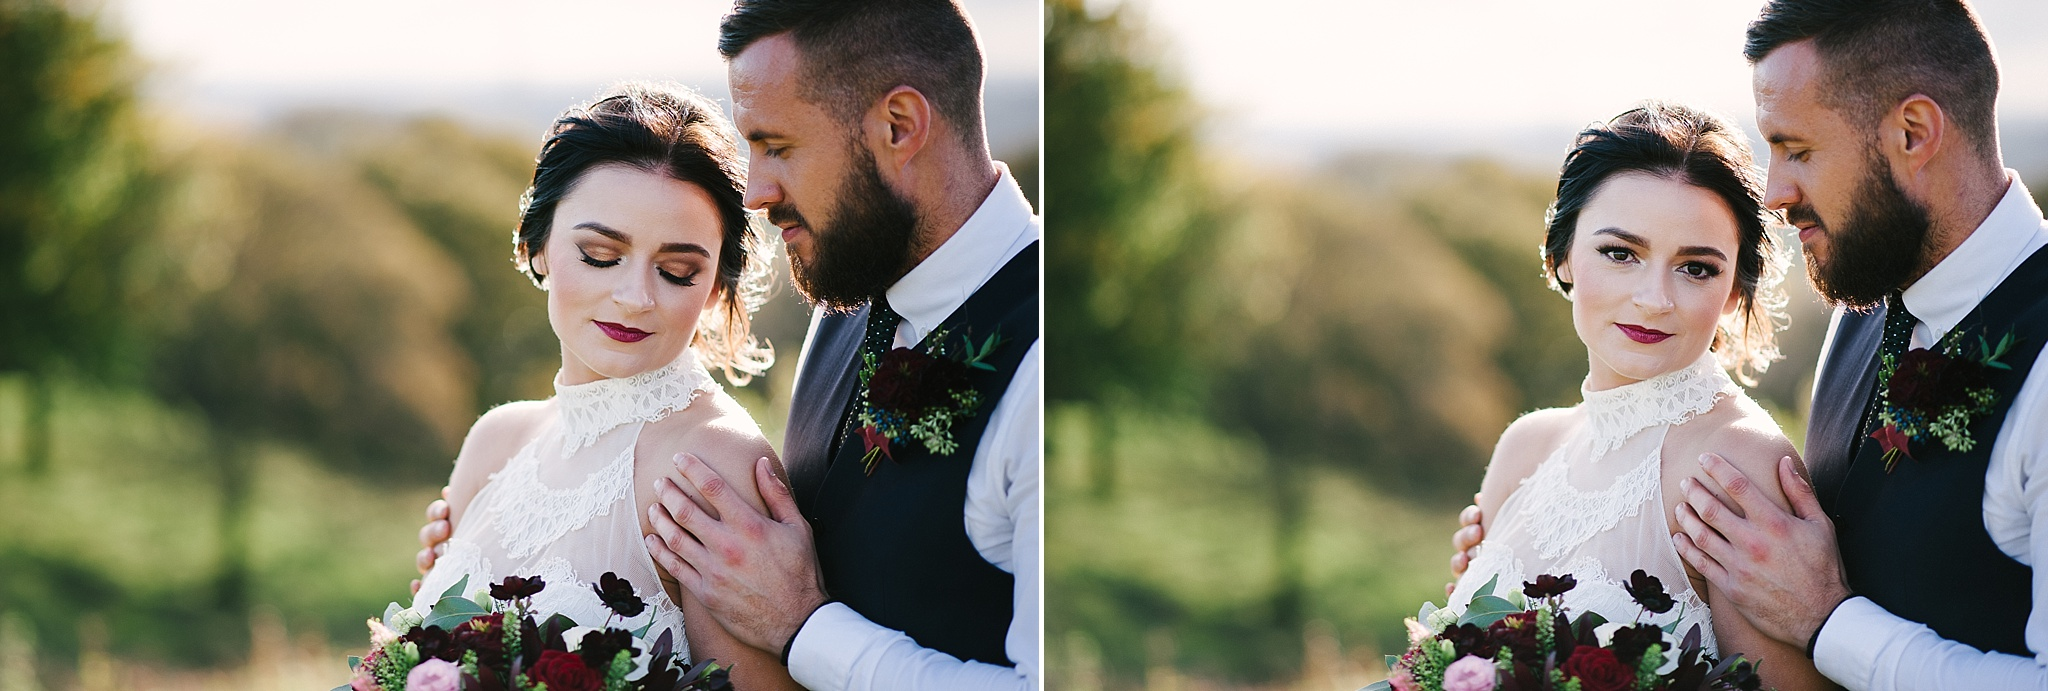 Bolton wedding photography at the Wellbeing Farm